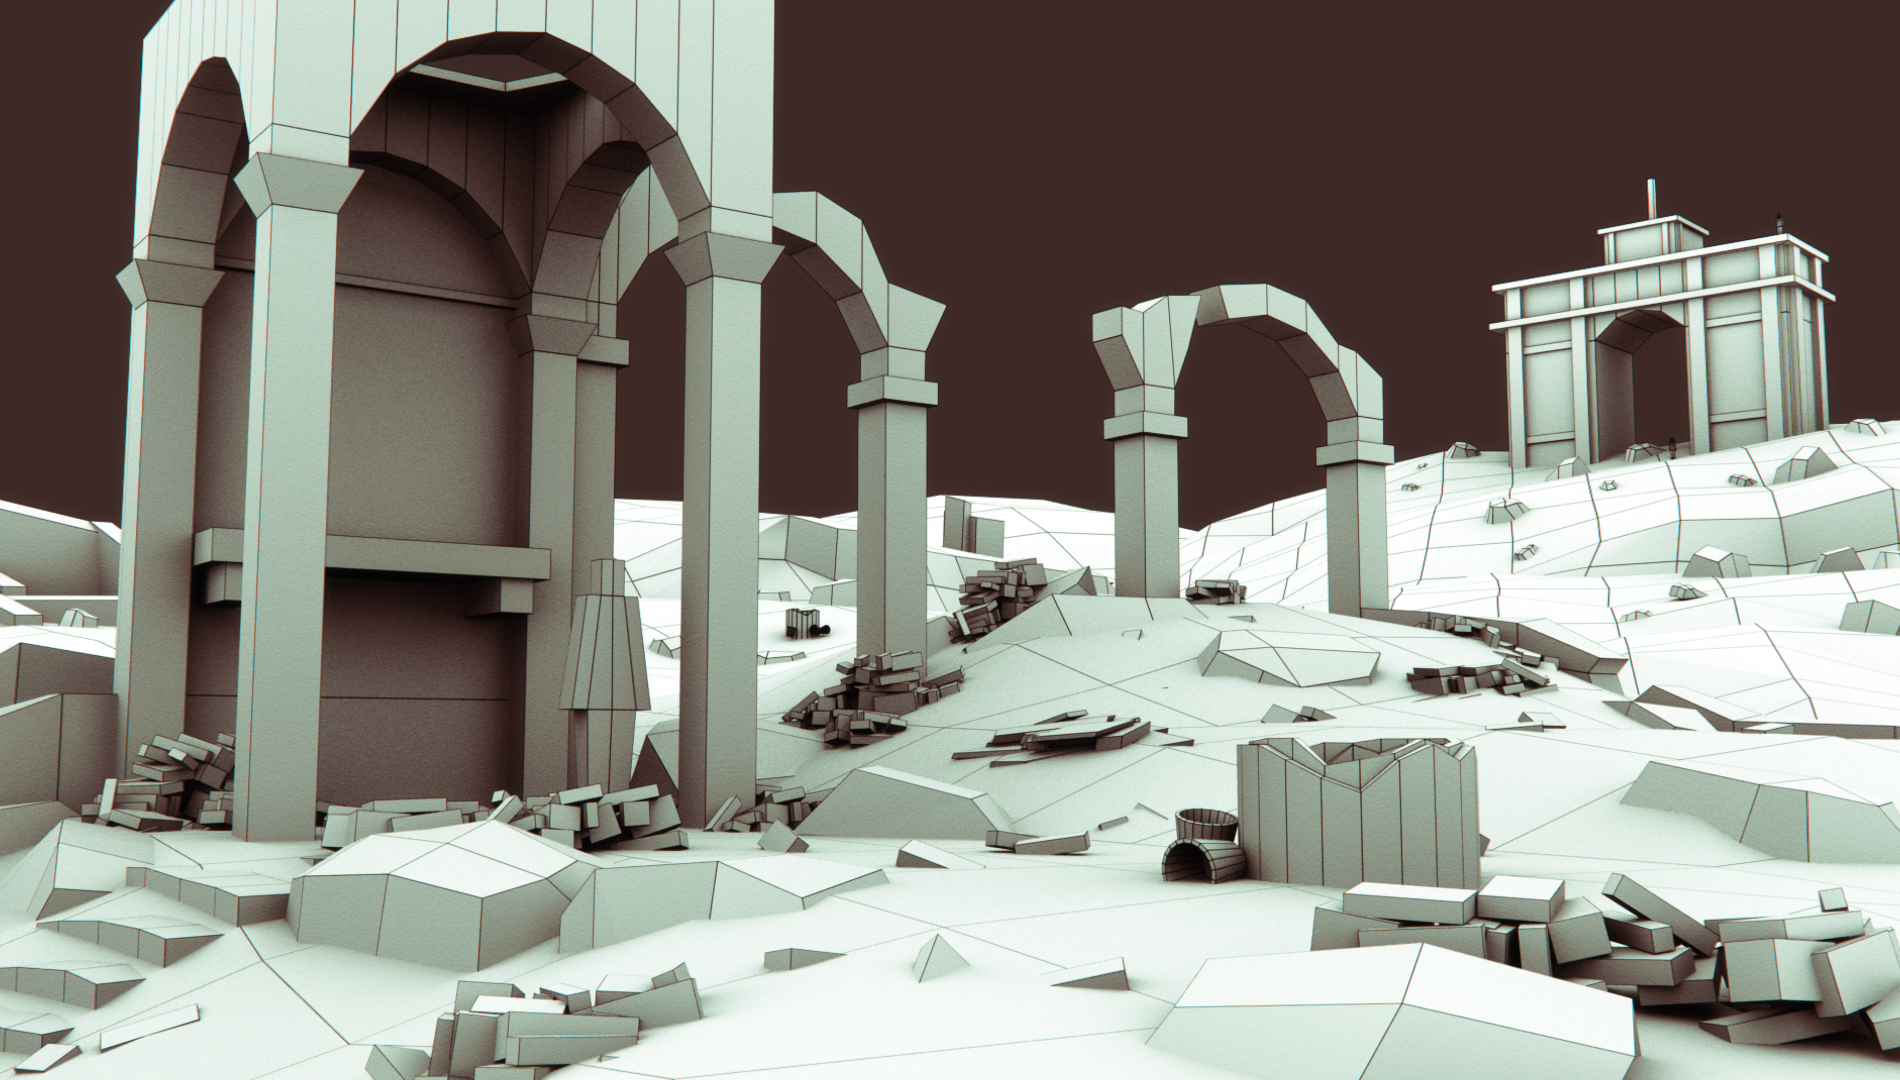 victor castro 3d   ruins  blockout